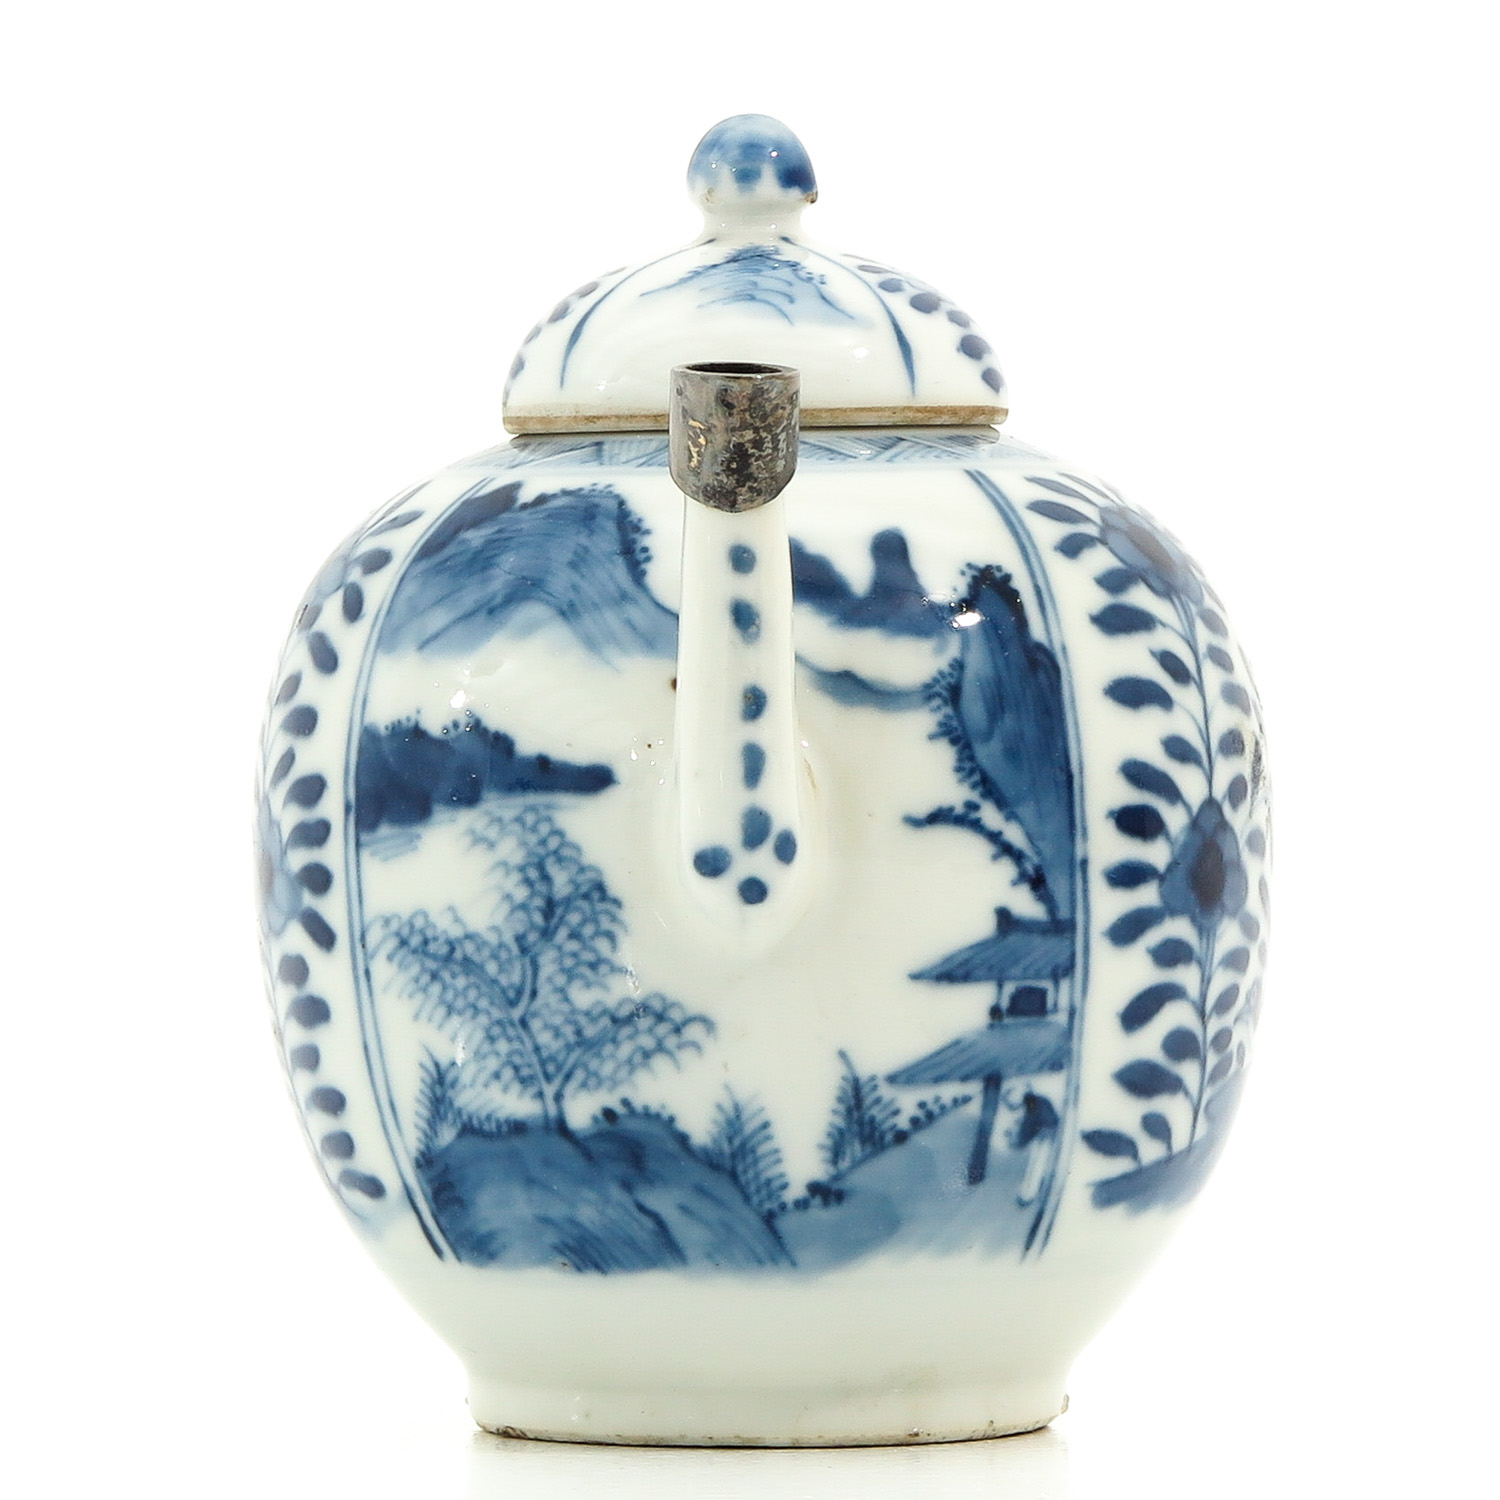 A Blue and White Teapot - Image 4 of 9